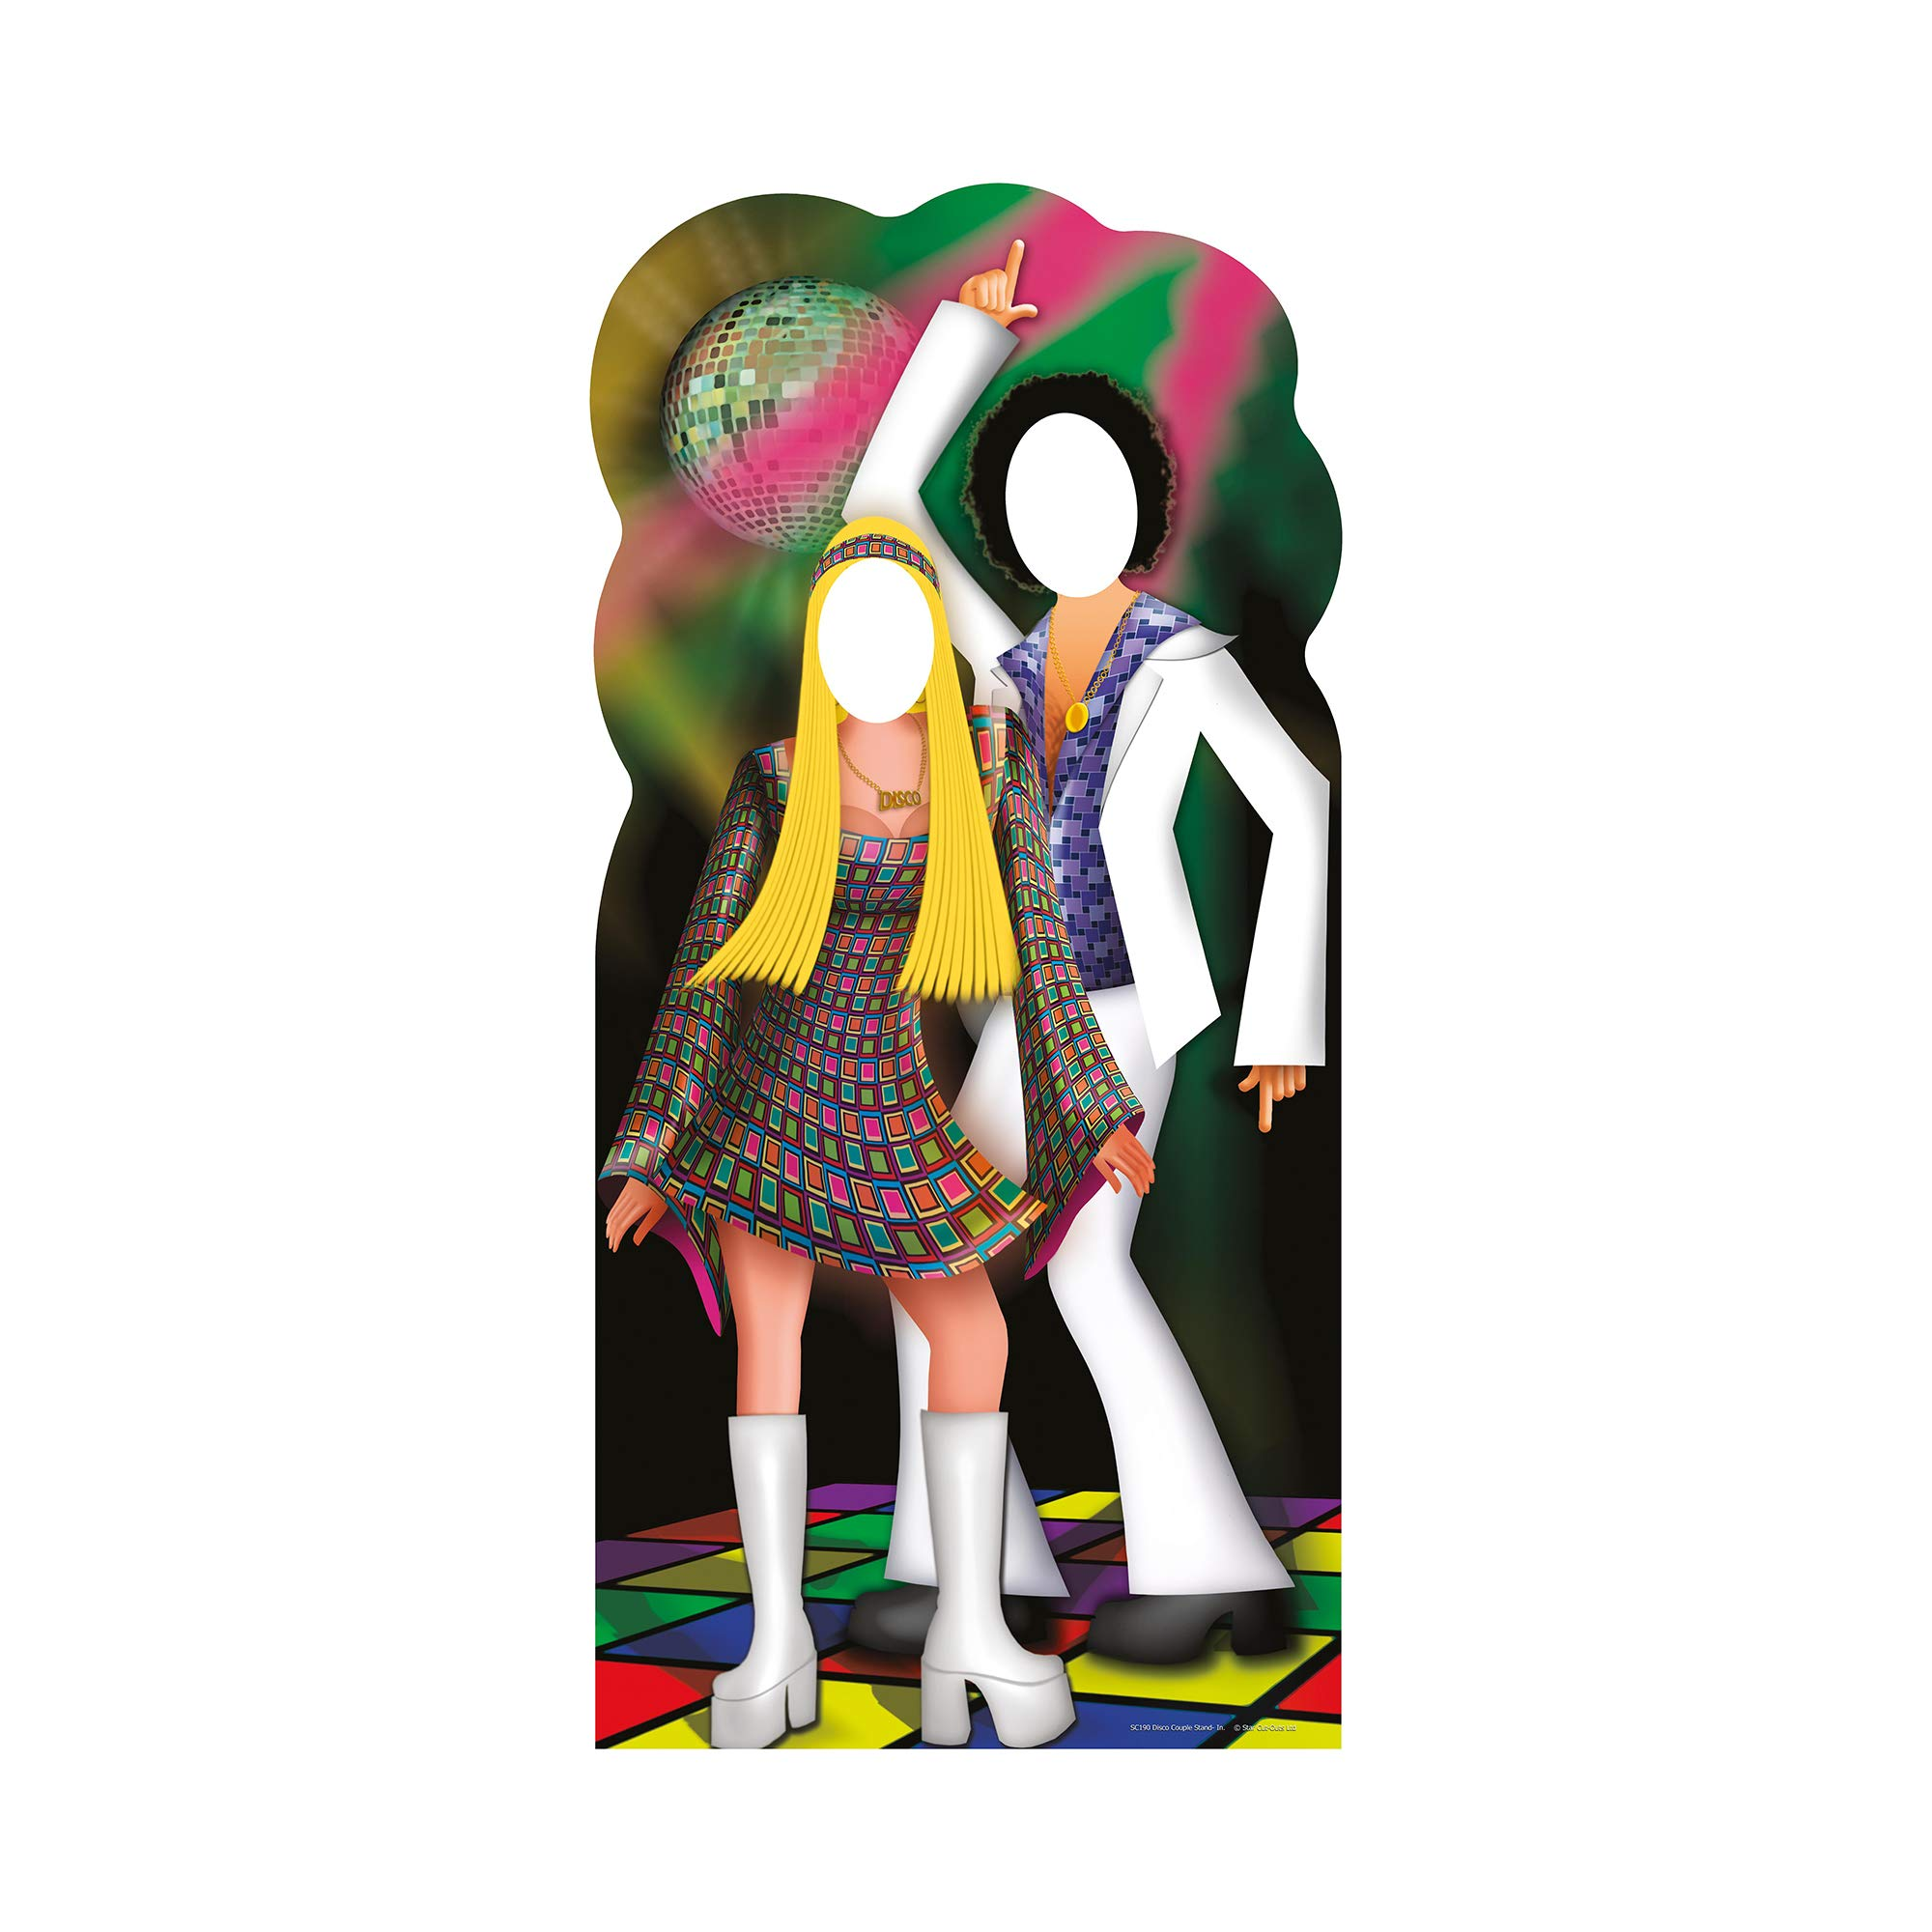 Star Cutouts SC190 Disco Couple Stand-In Cardboard Cutout Standup